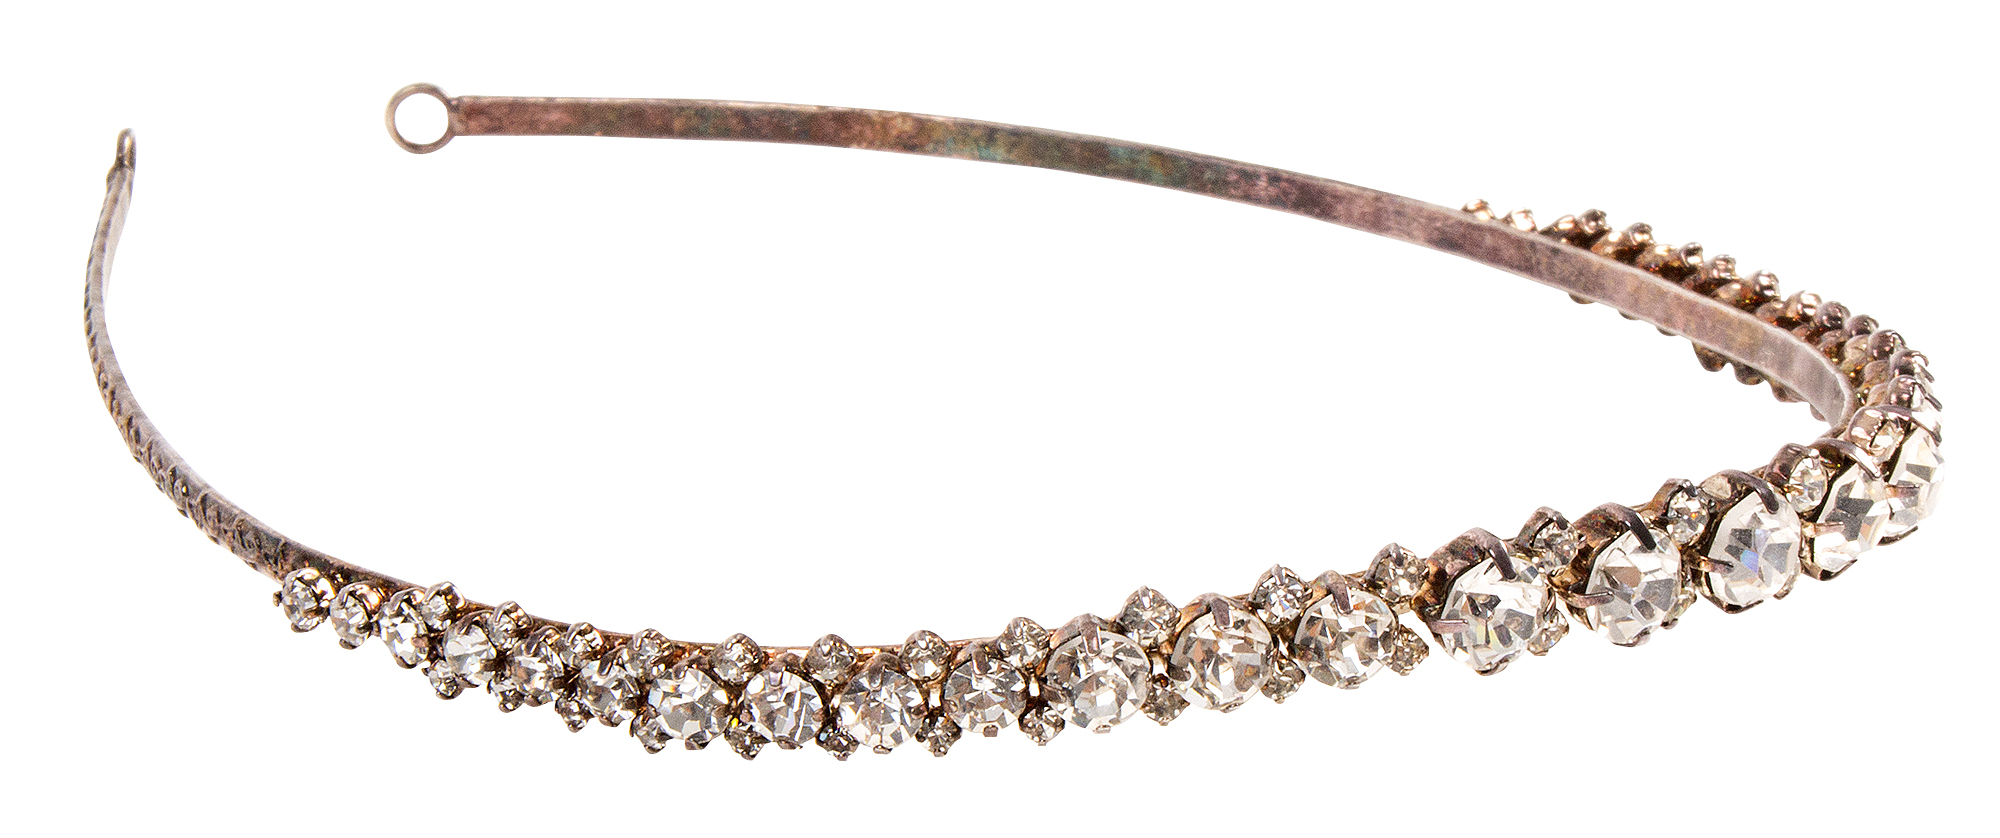 Rhinestone headband, $53 at Out of Hand